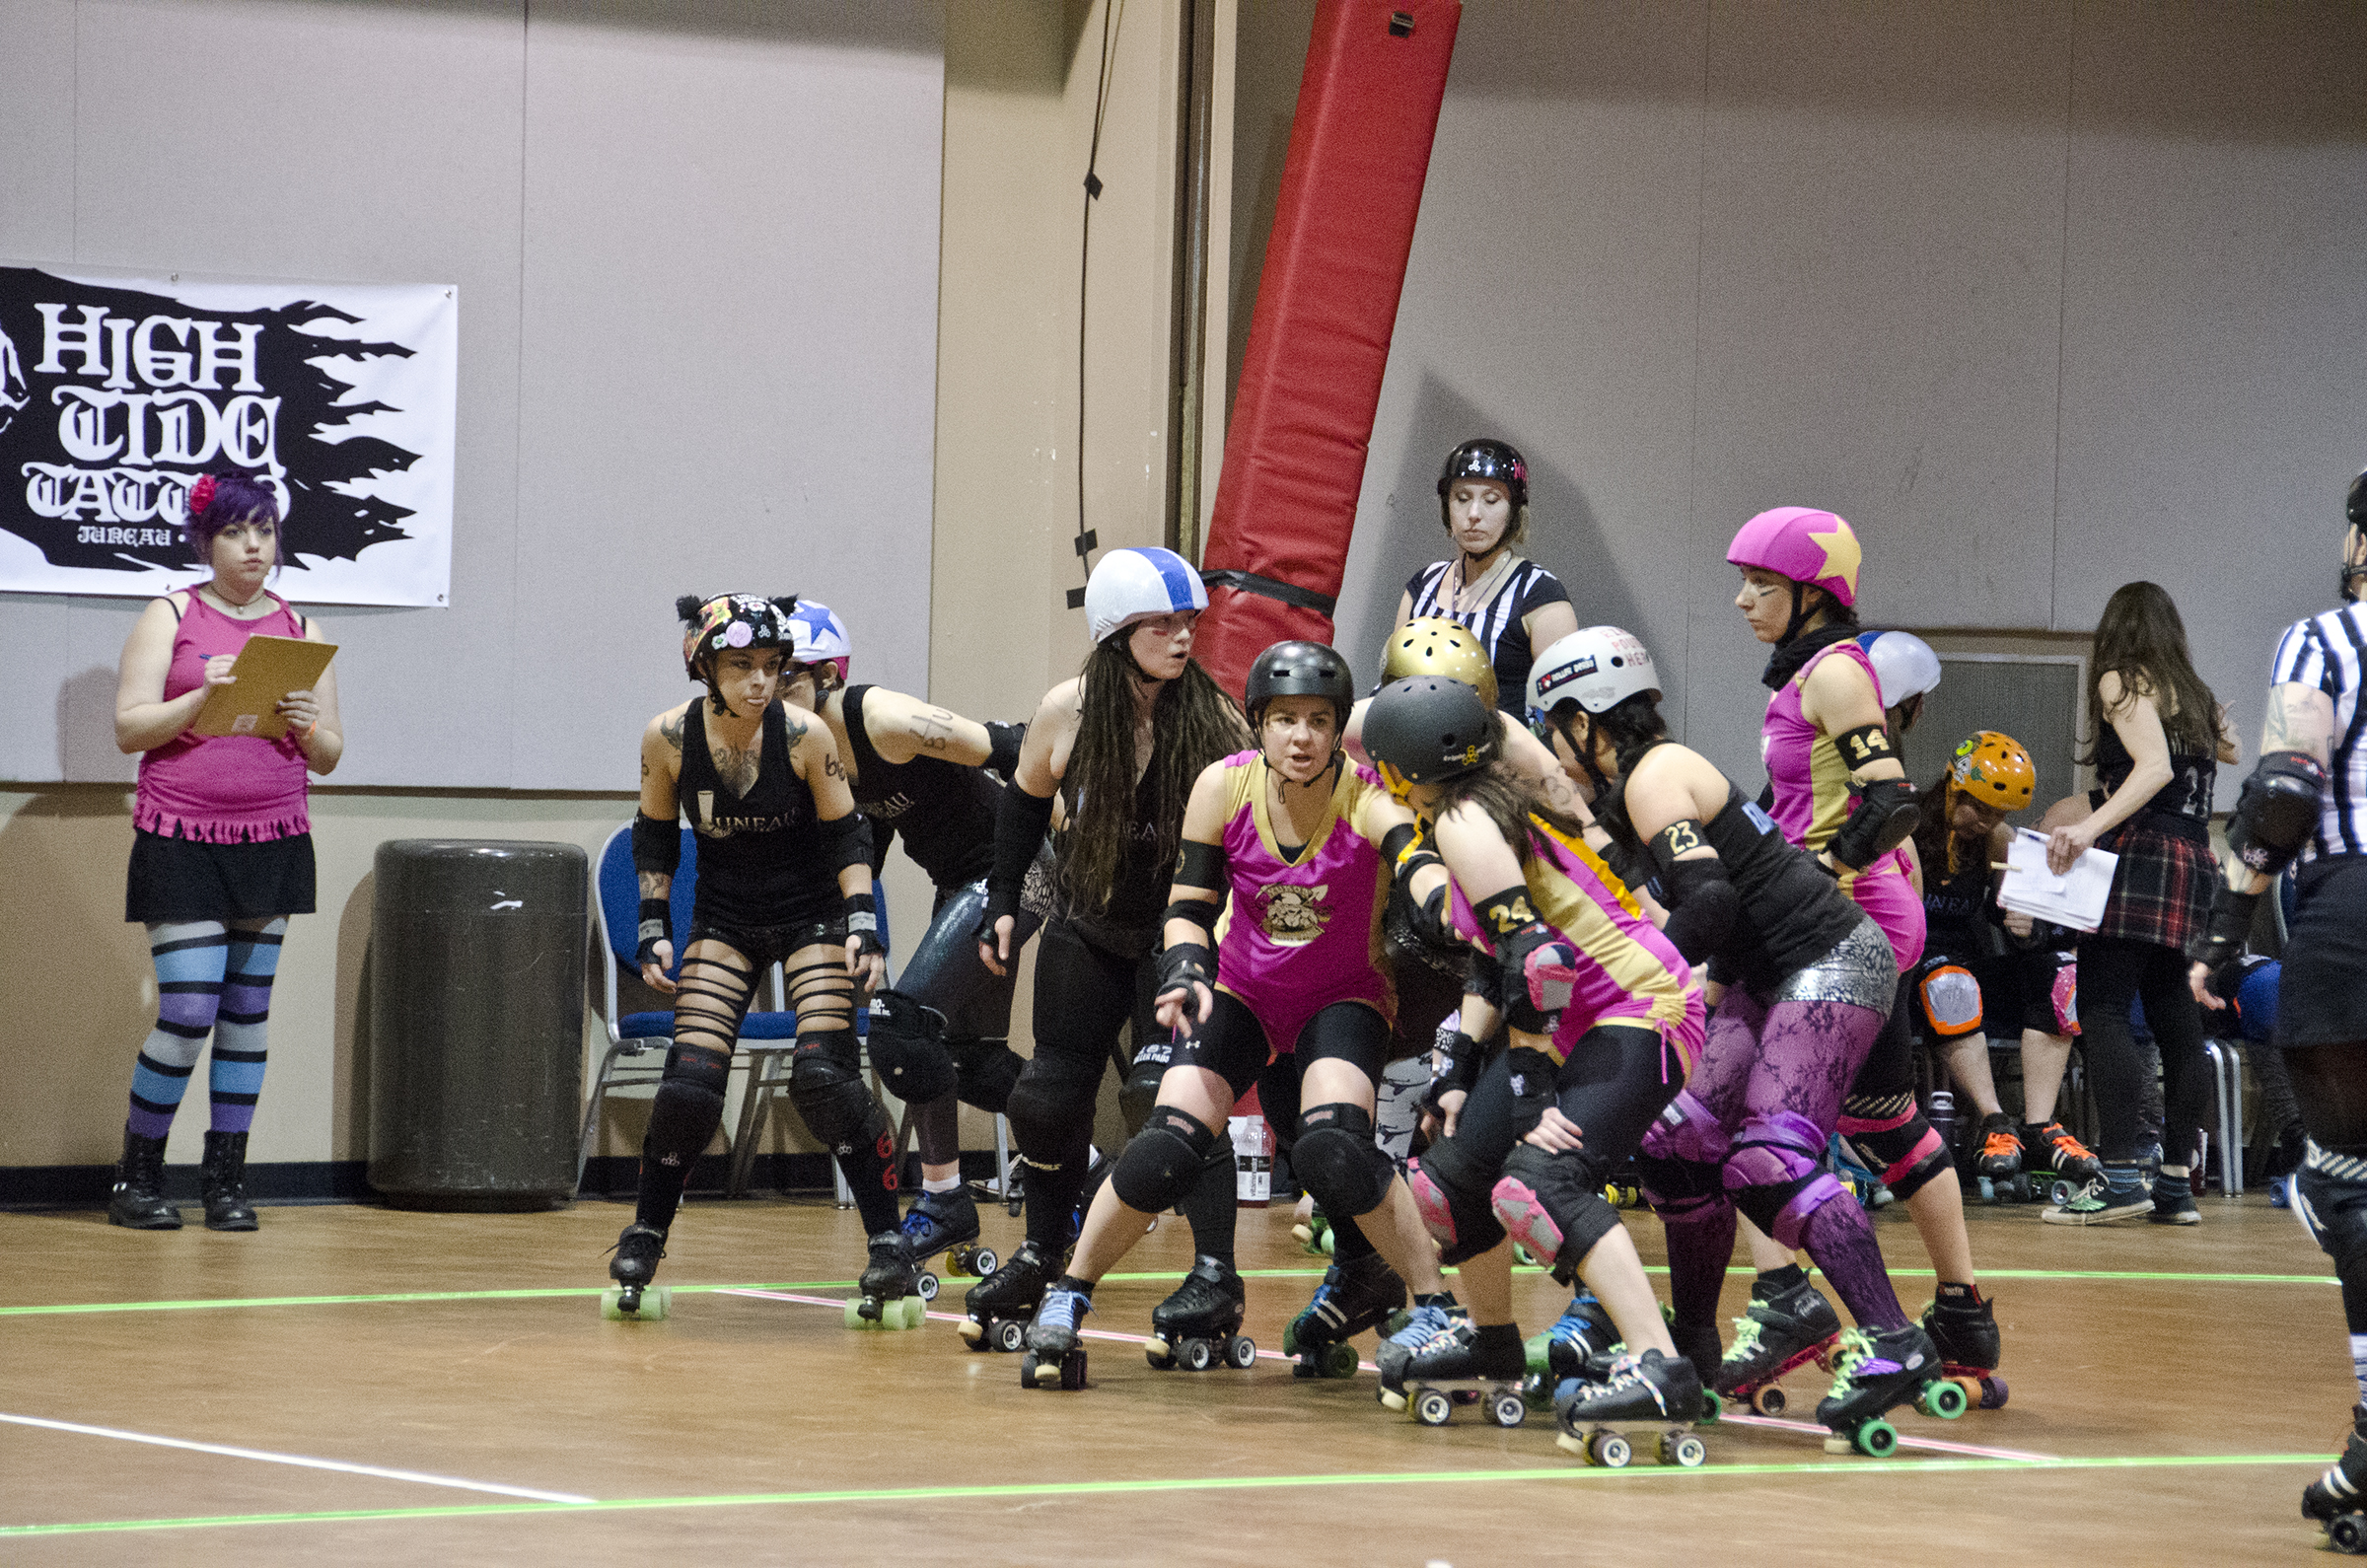 Juneau Rollergirls at their bout last Feburary. (Photo by Greg Culley)